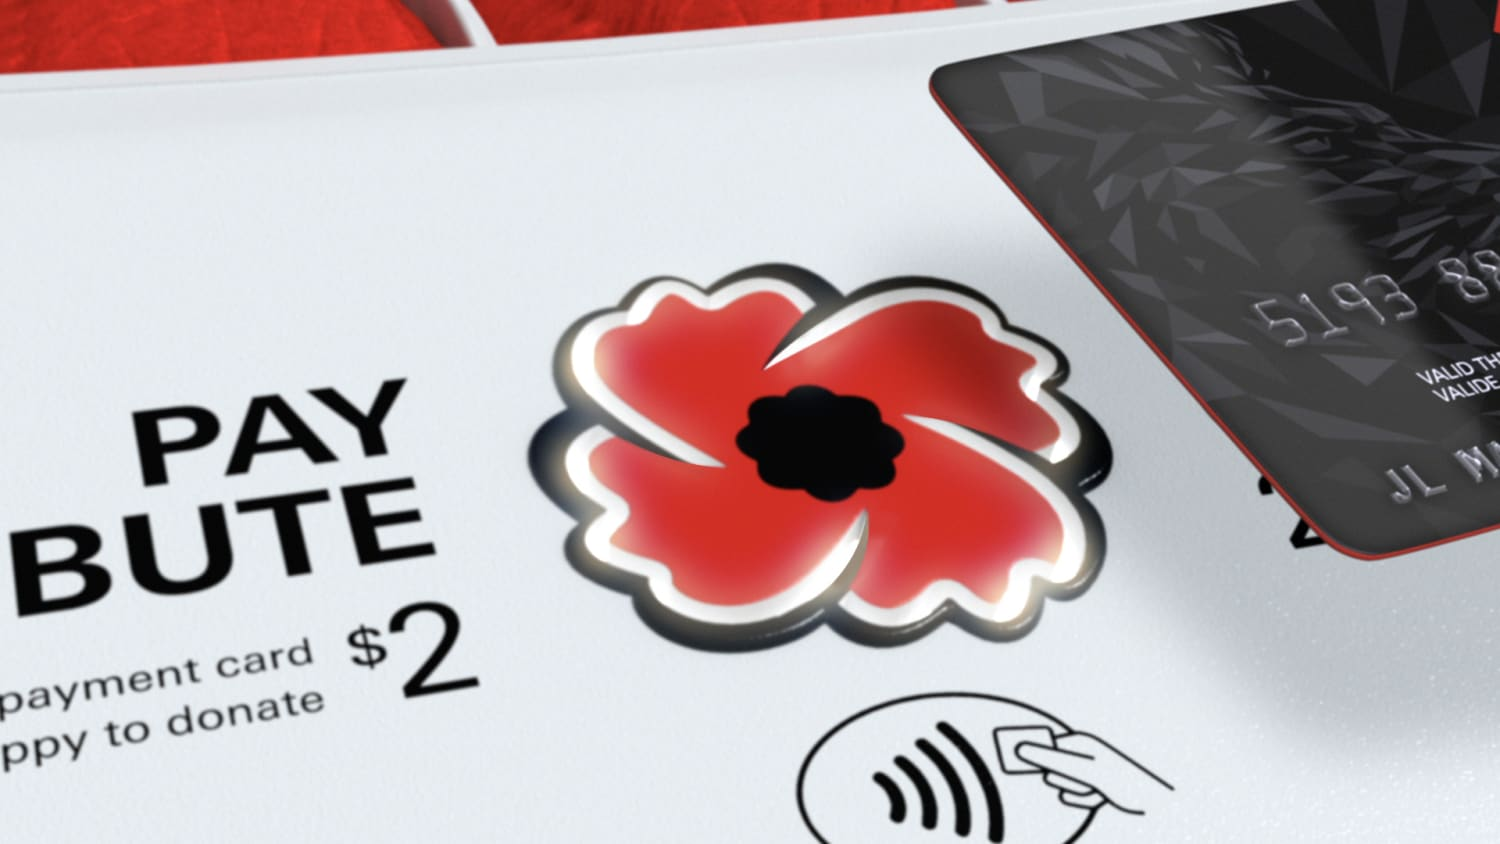 Image of partially visible credit card to the right of the screen. The electronic poppy lit up, besides the words Pay Tribute $2 and the tap icon